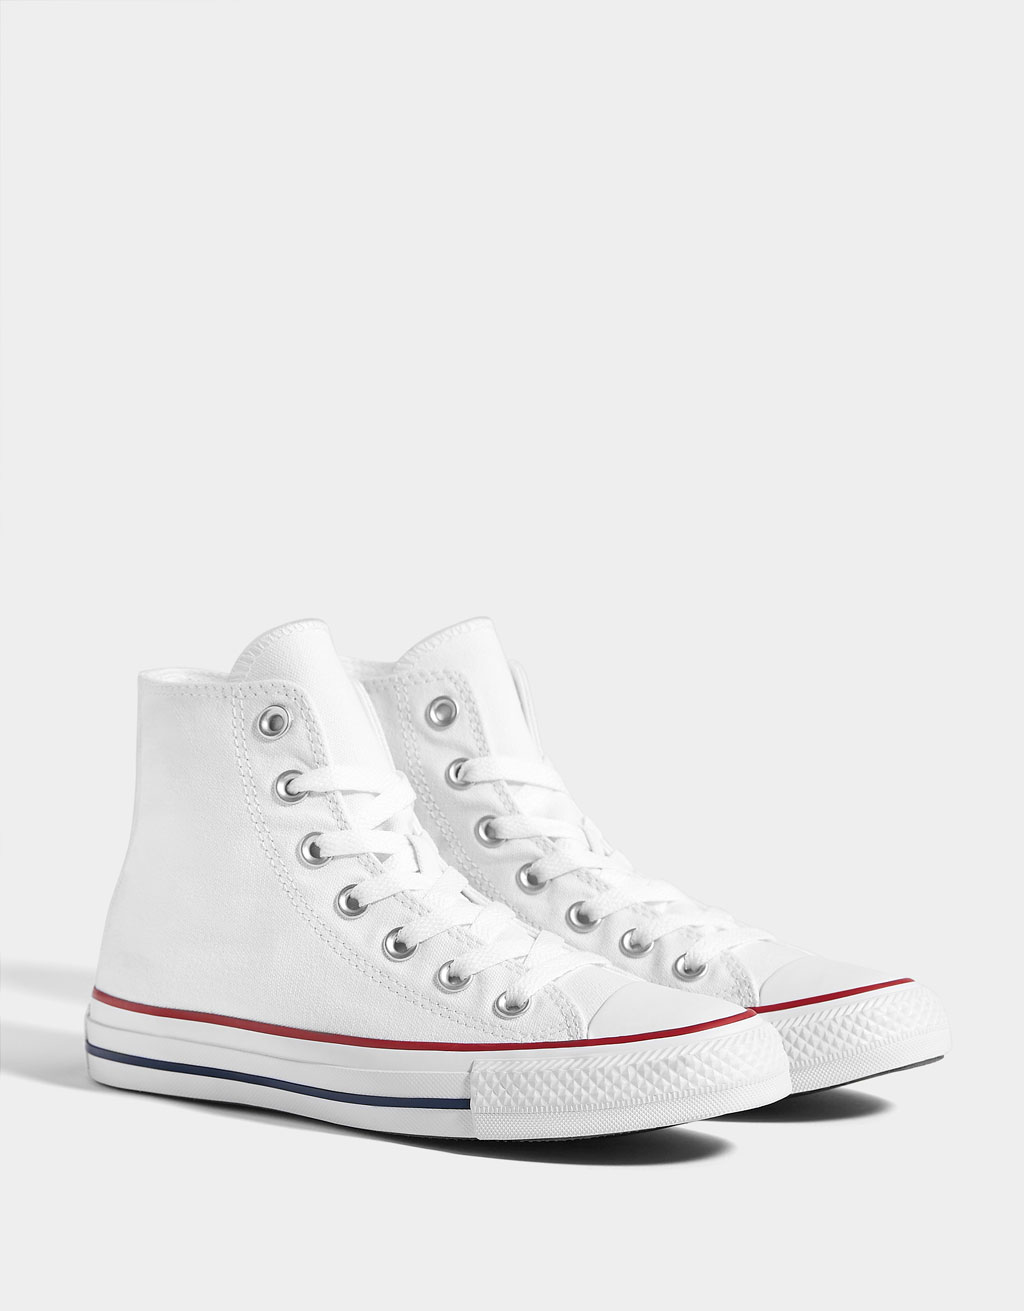 coupon code white ankle converse 053bf 05df3